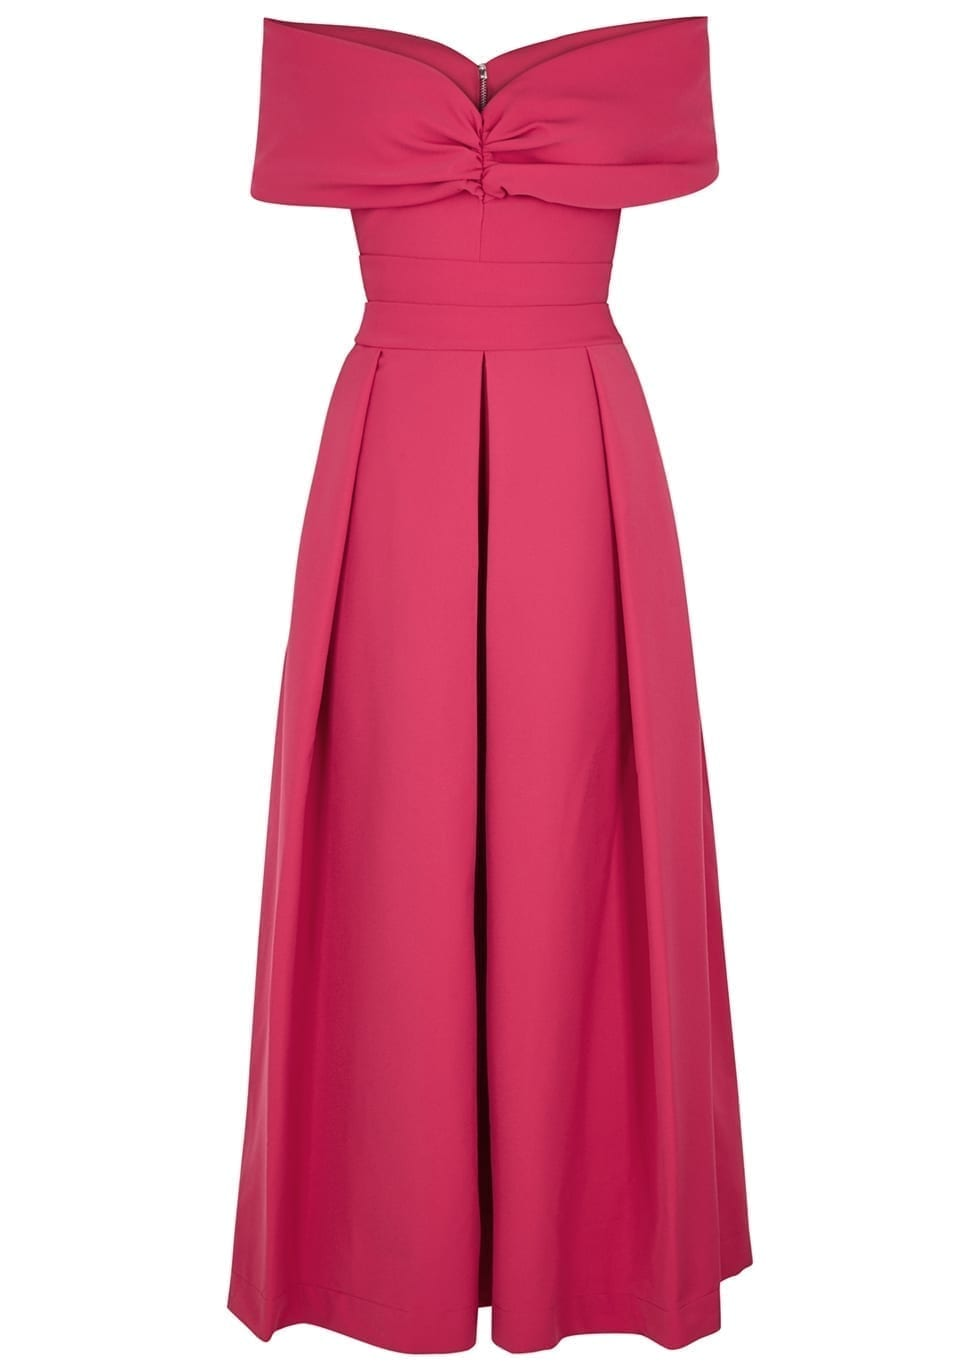 PREEN BY THORNTON BREGAZZI Daniela Ruched Maxi Pink Dress